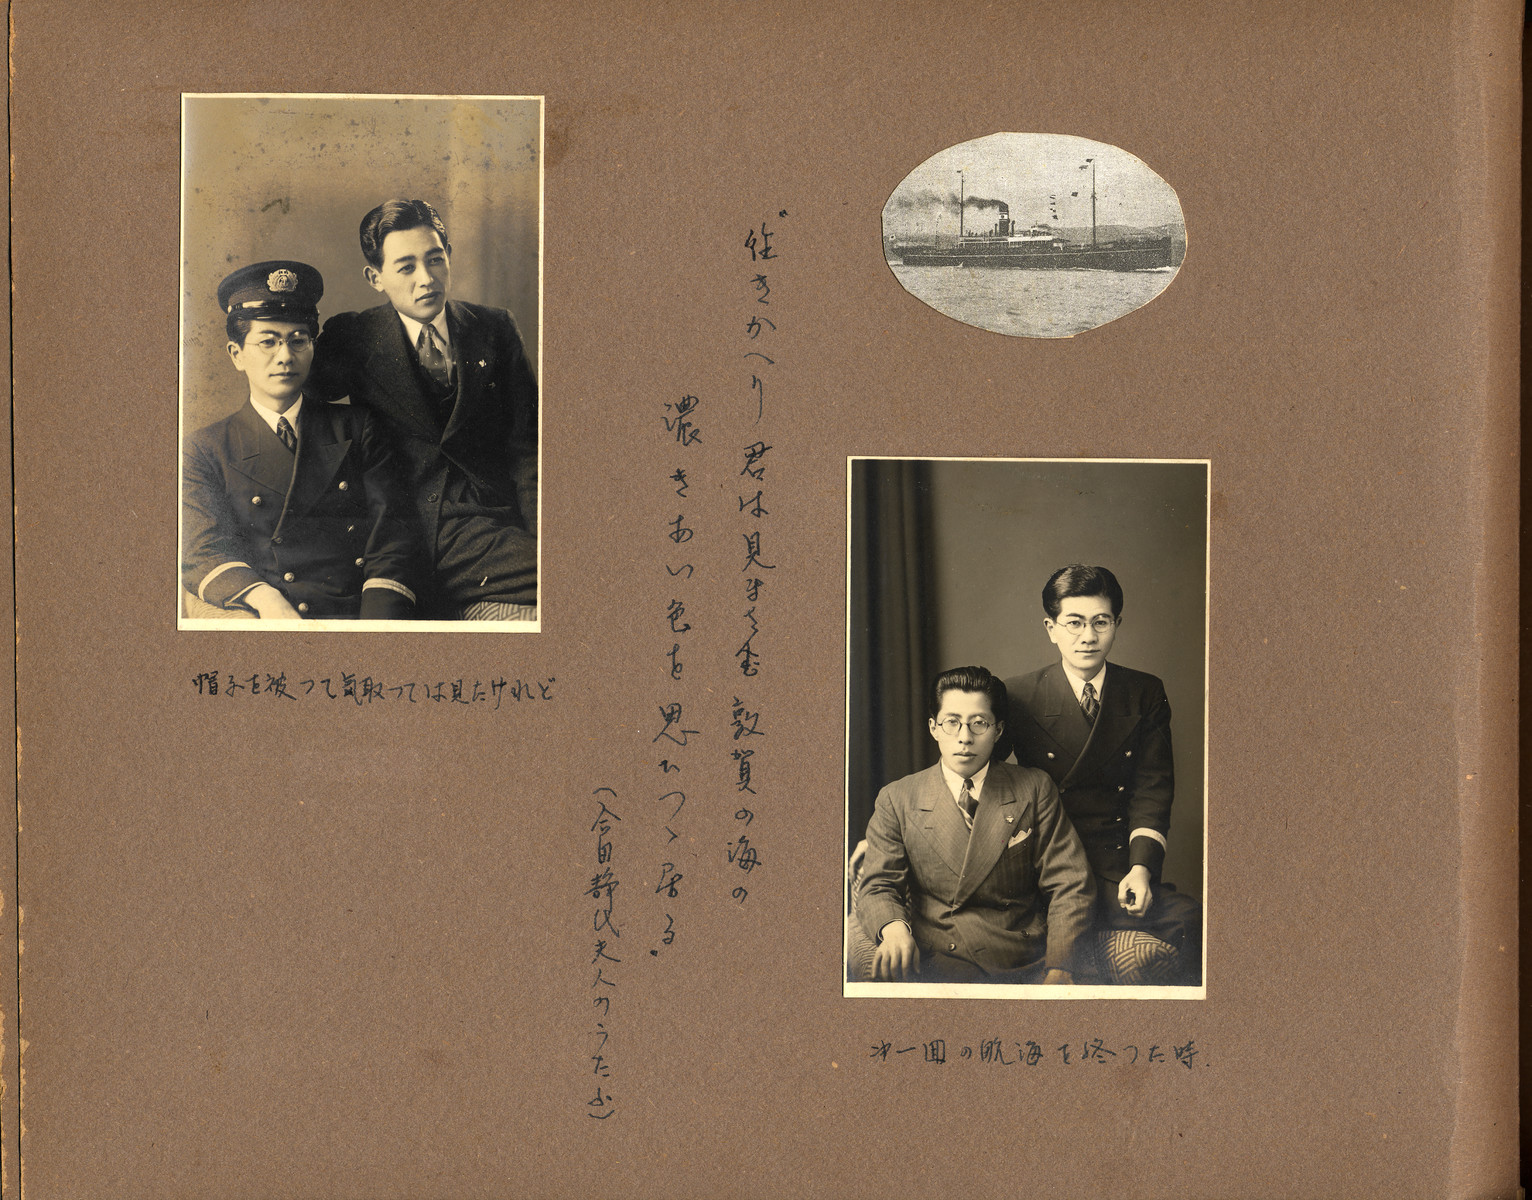 Page from Tatsuo Osako's photo album documenting his experiences on board the Amakusa-maru ferrying Jewish refugees to safety.